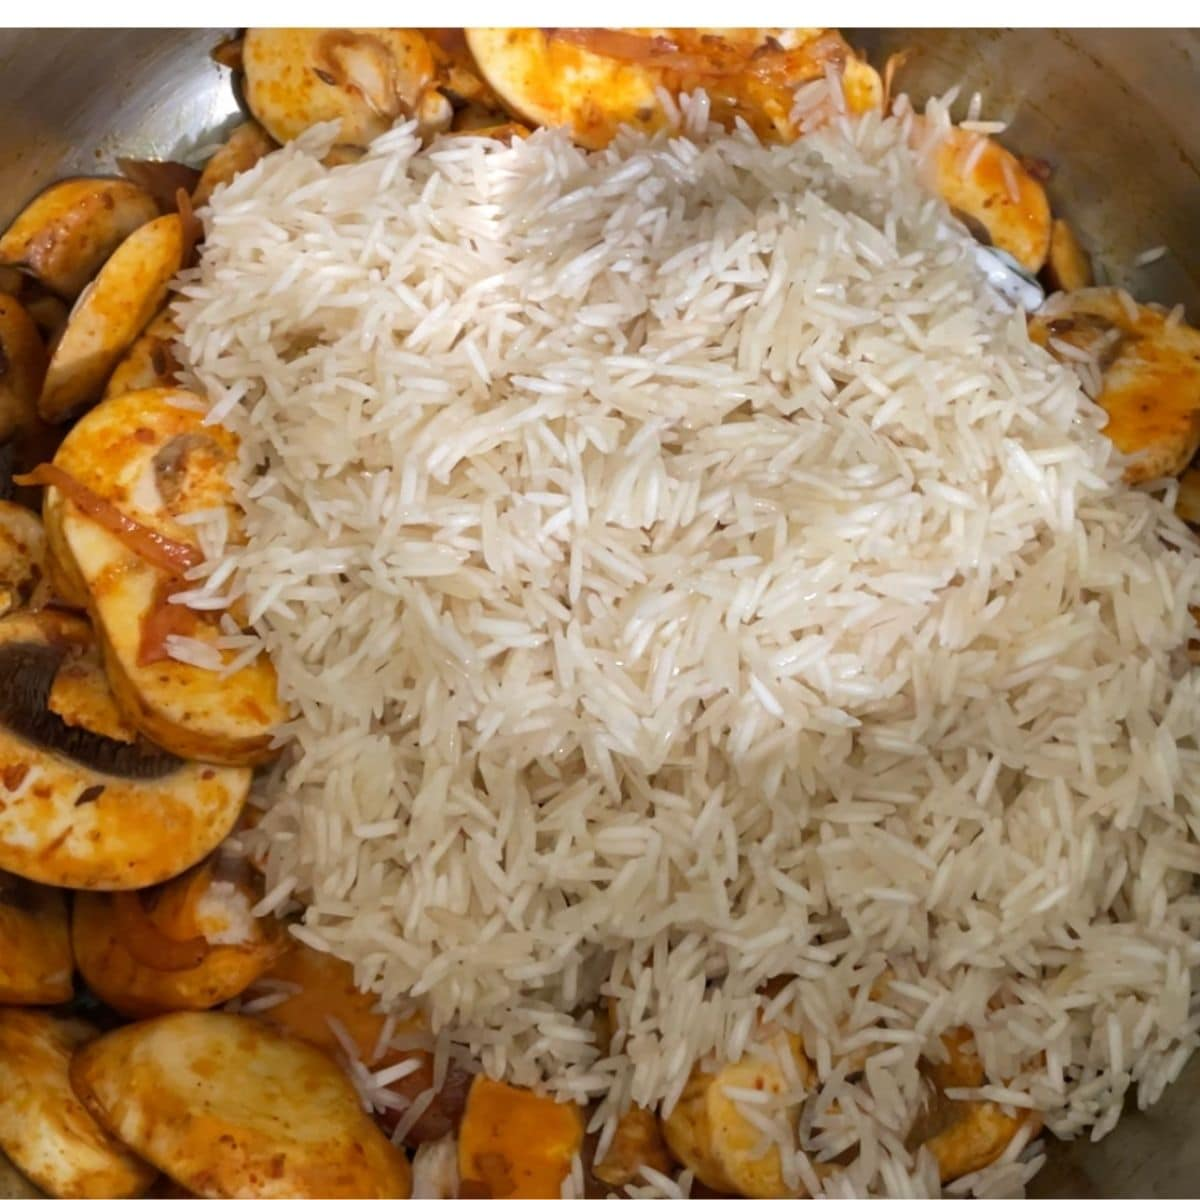 A pot filled with rice and mushrooms